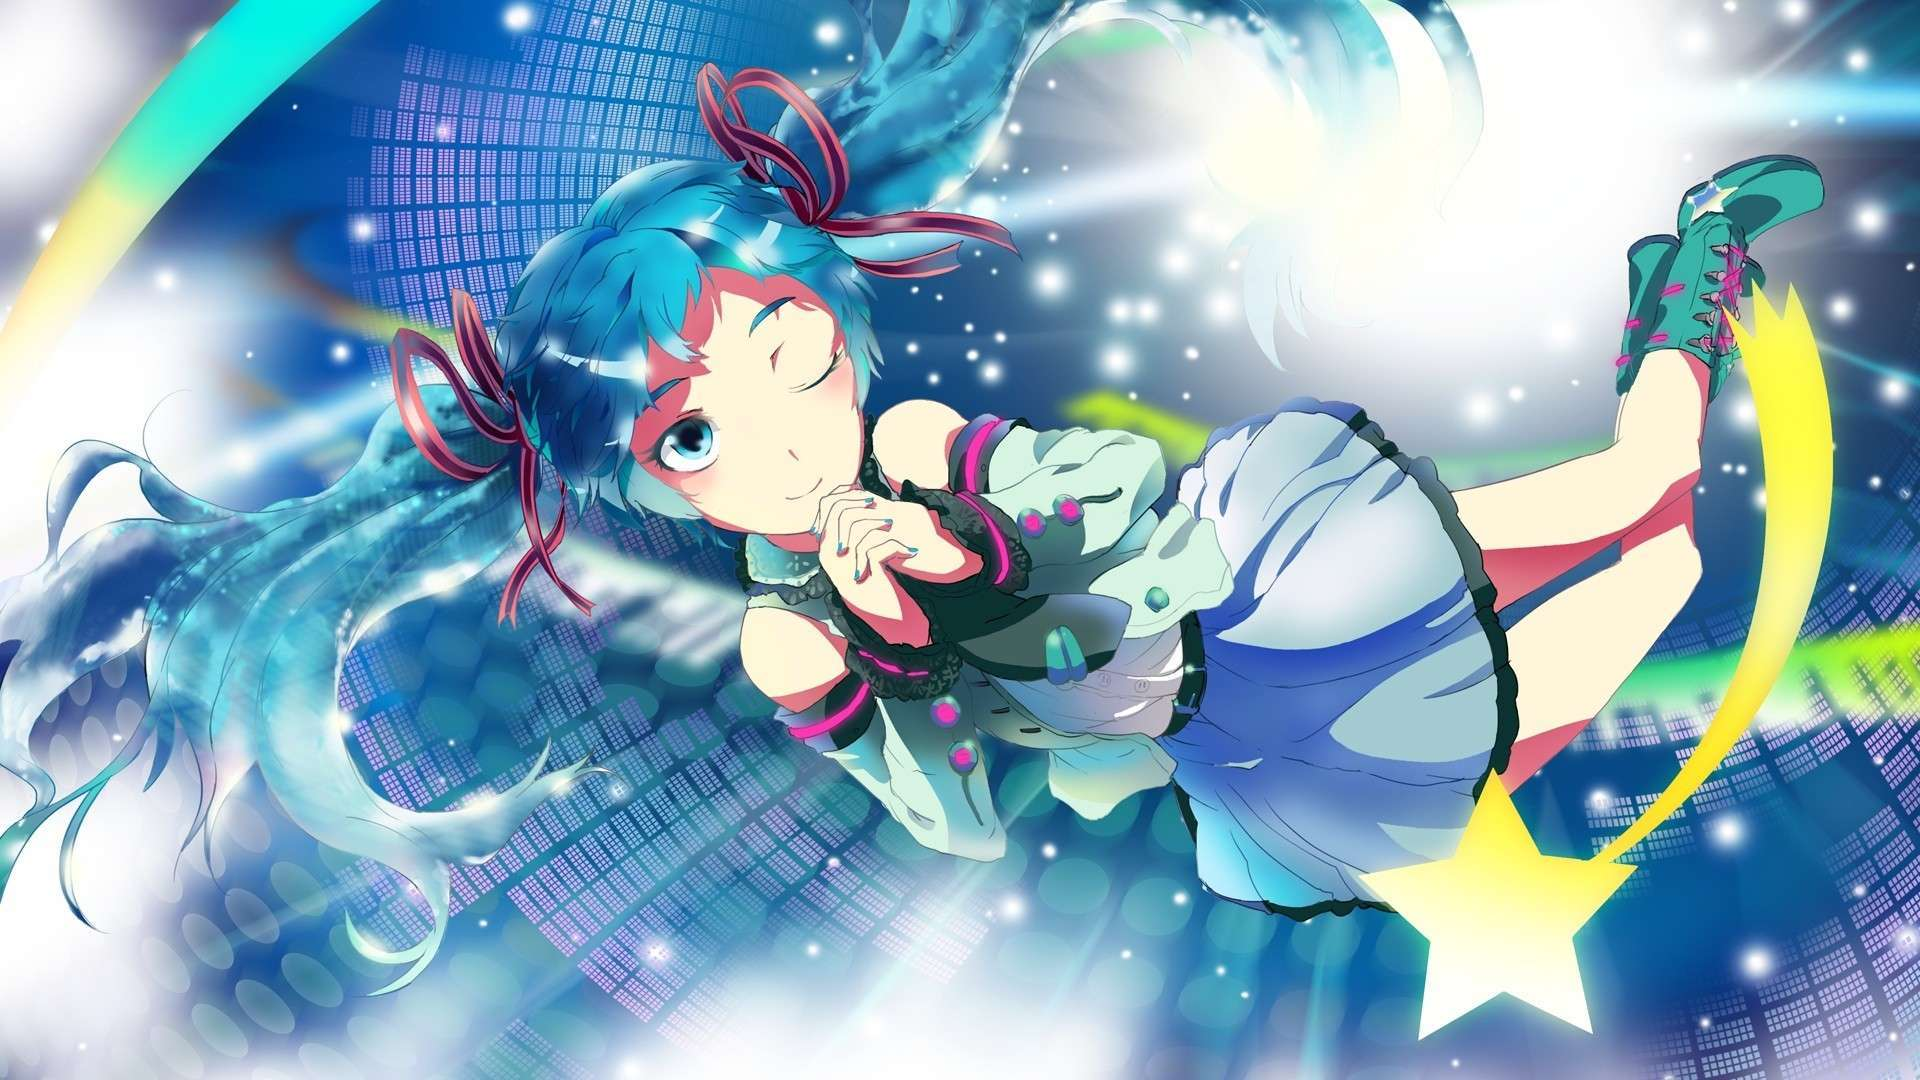 Blue Anime 1080p Wallpapers Wallpaper Cave